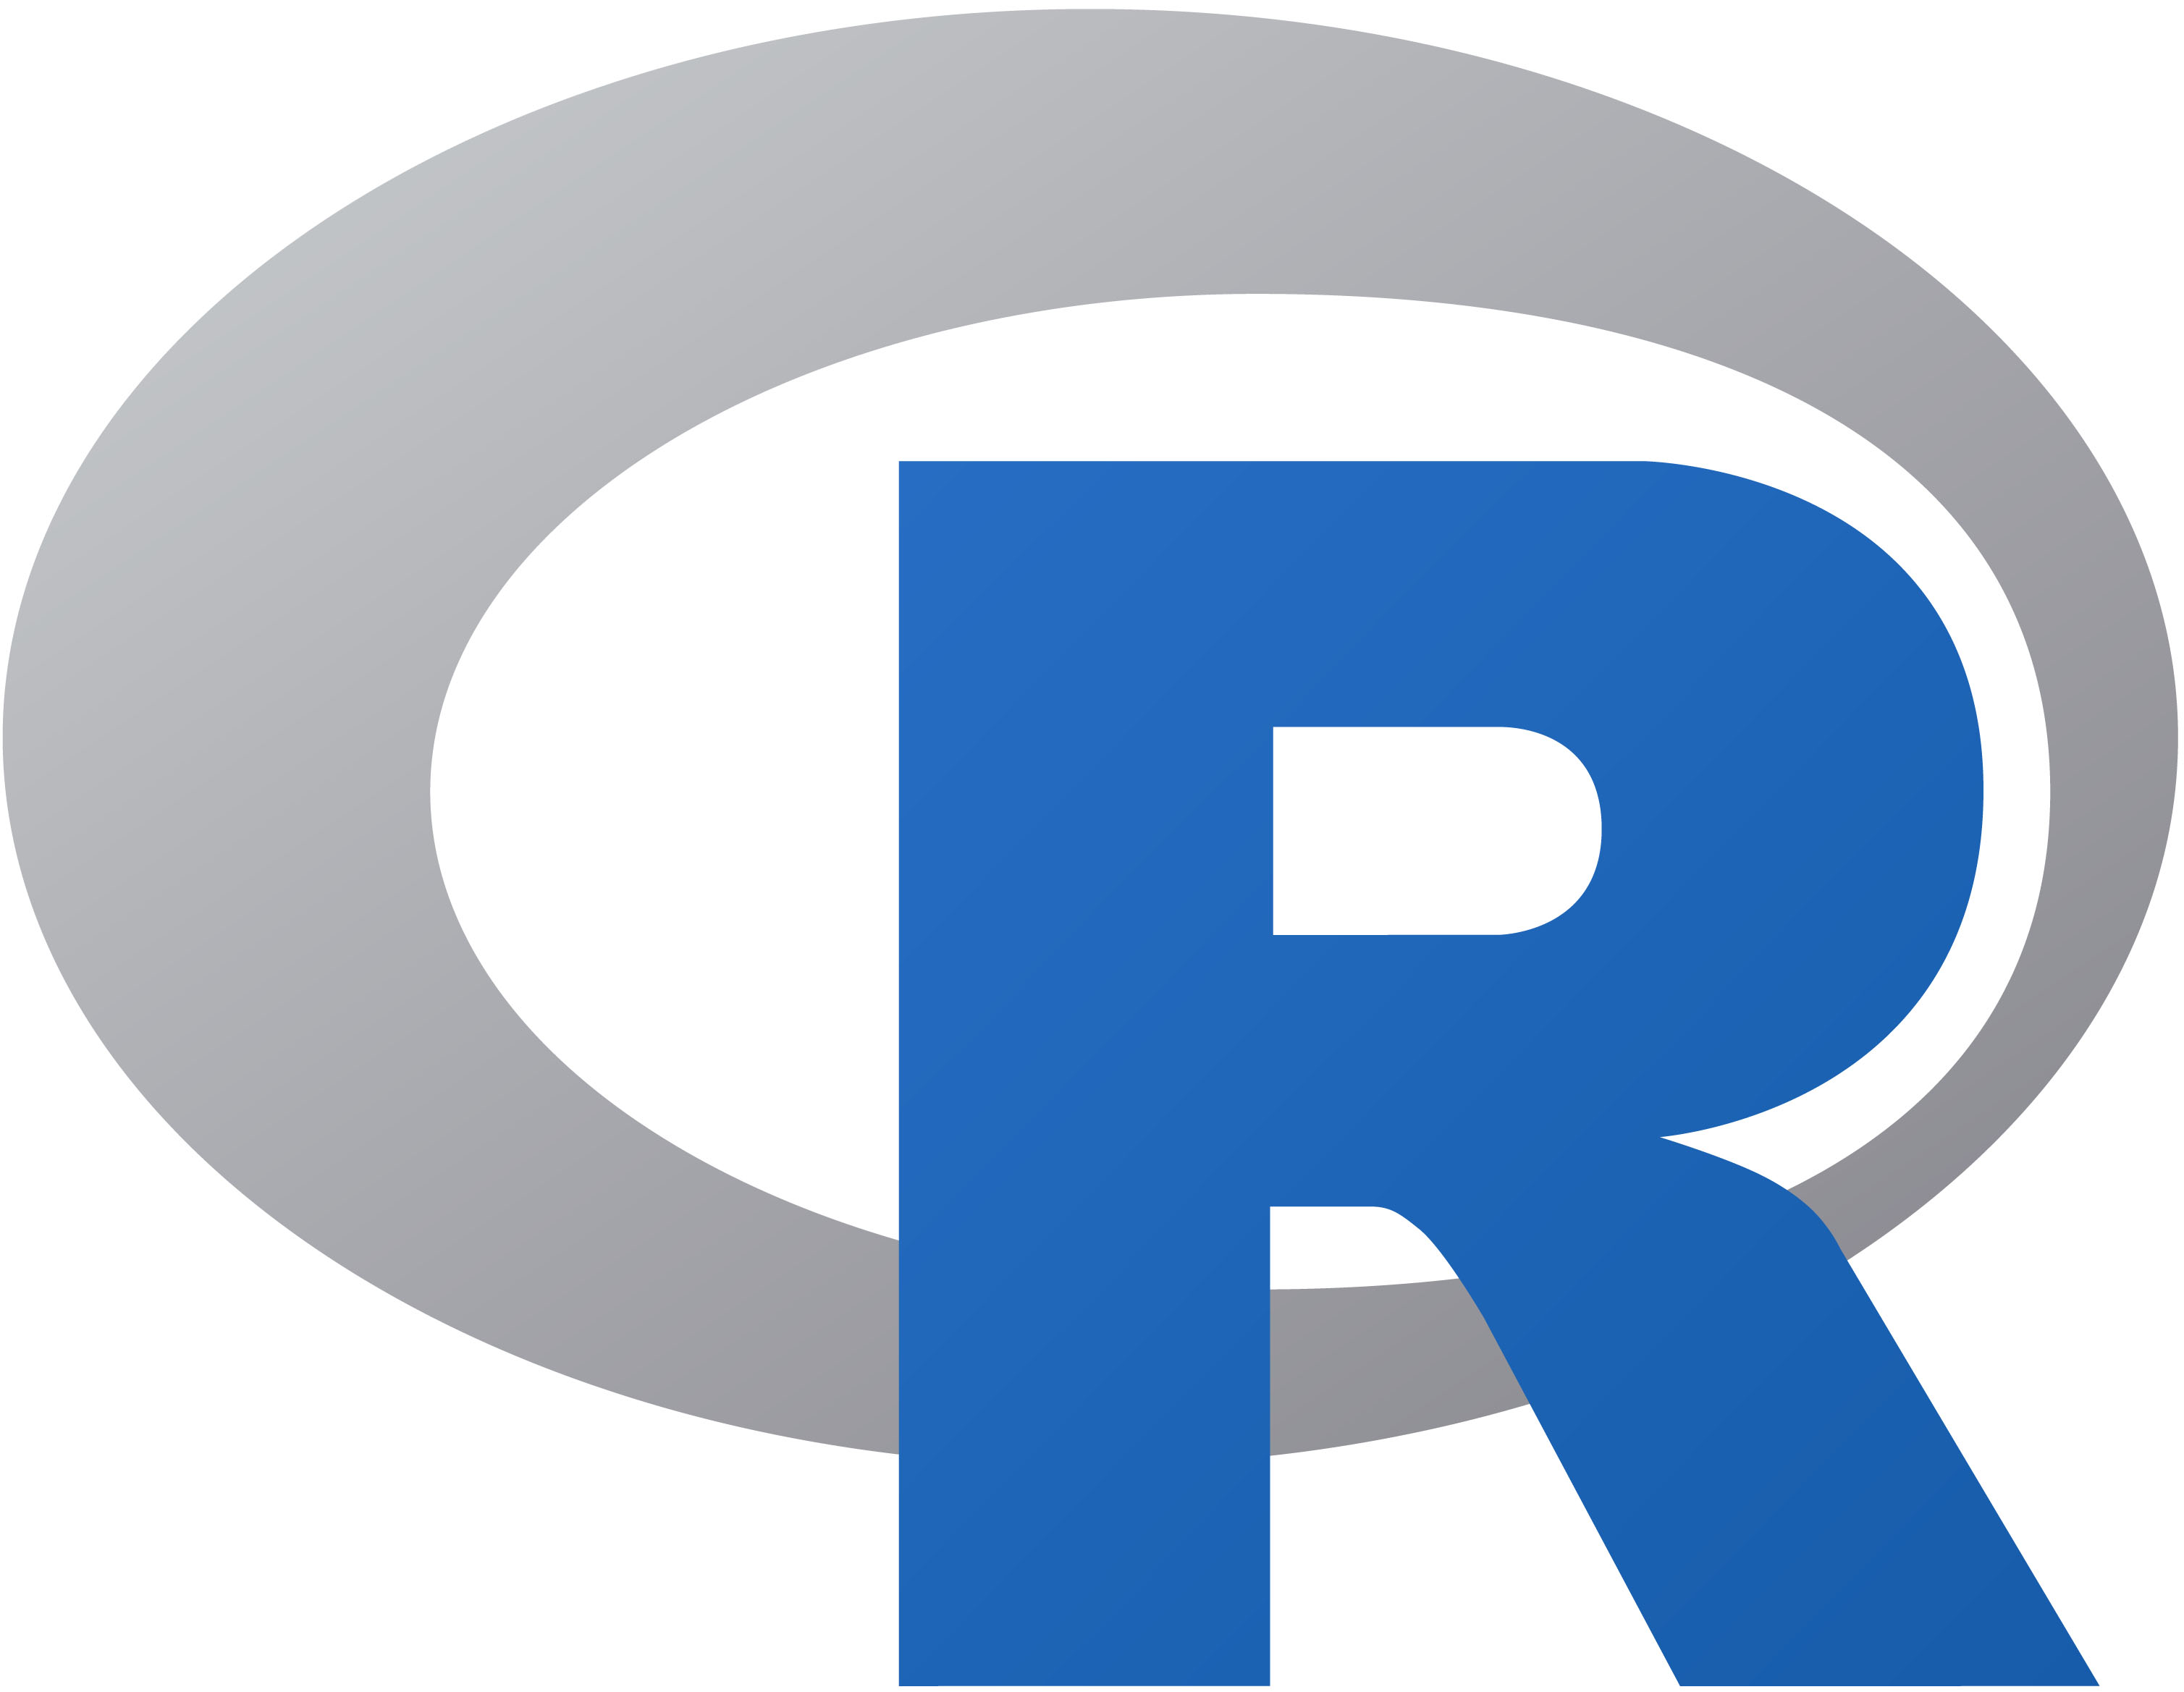 R Workshop Series: Statistical Analysis in R